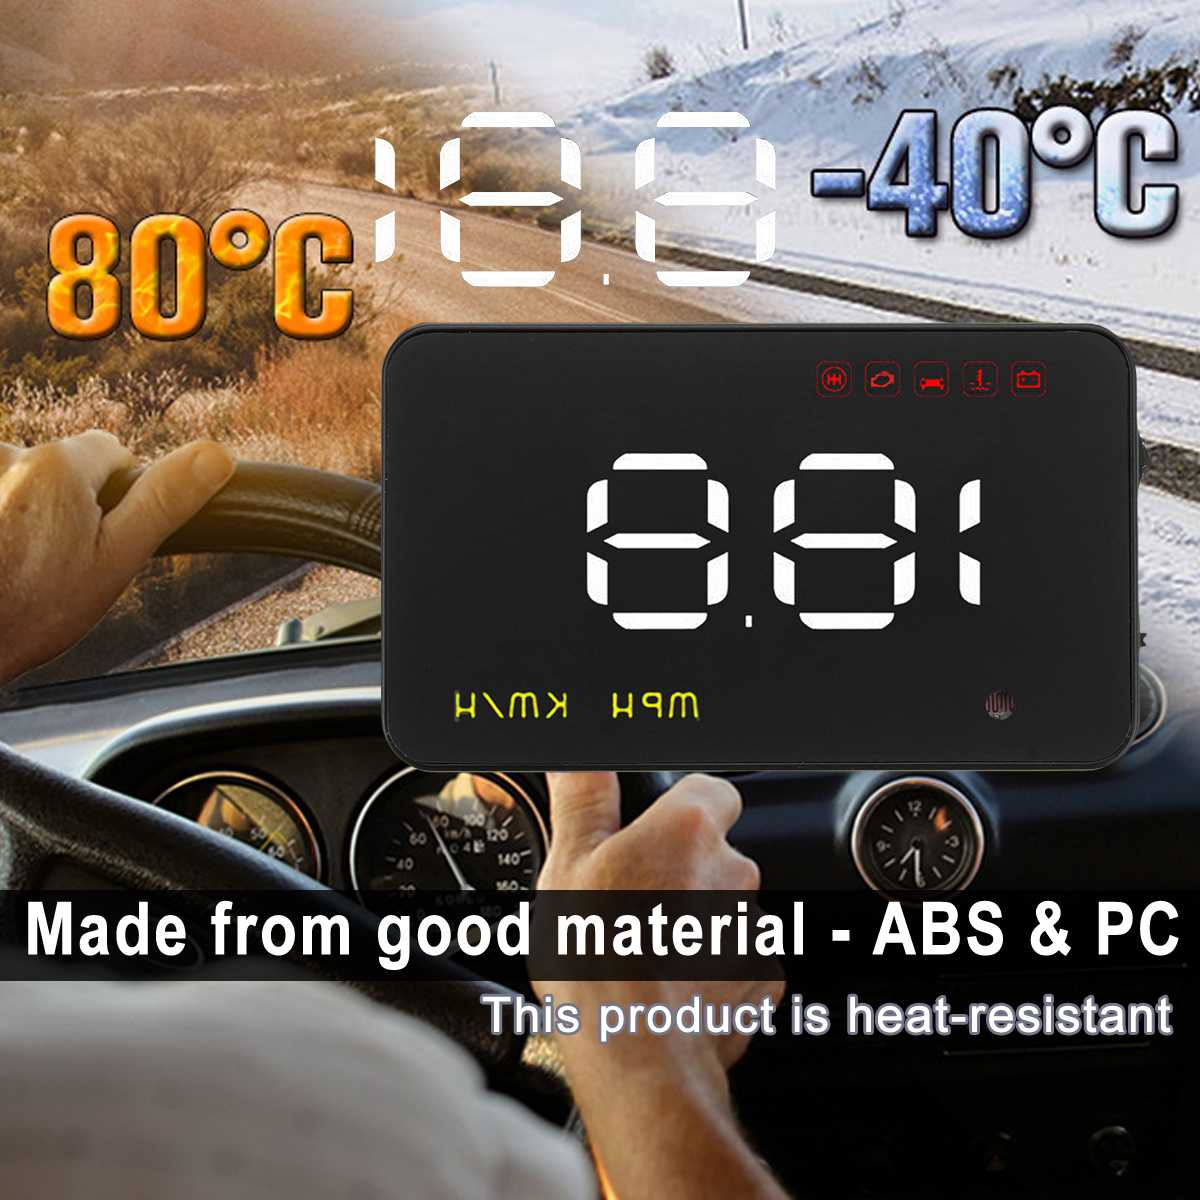 3.5 Inch Uinversal Digital Auto Car HUD Head Up Display LCD OBD2 Speedometer Overspeed Warning System A1000 Alarm Voltage